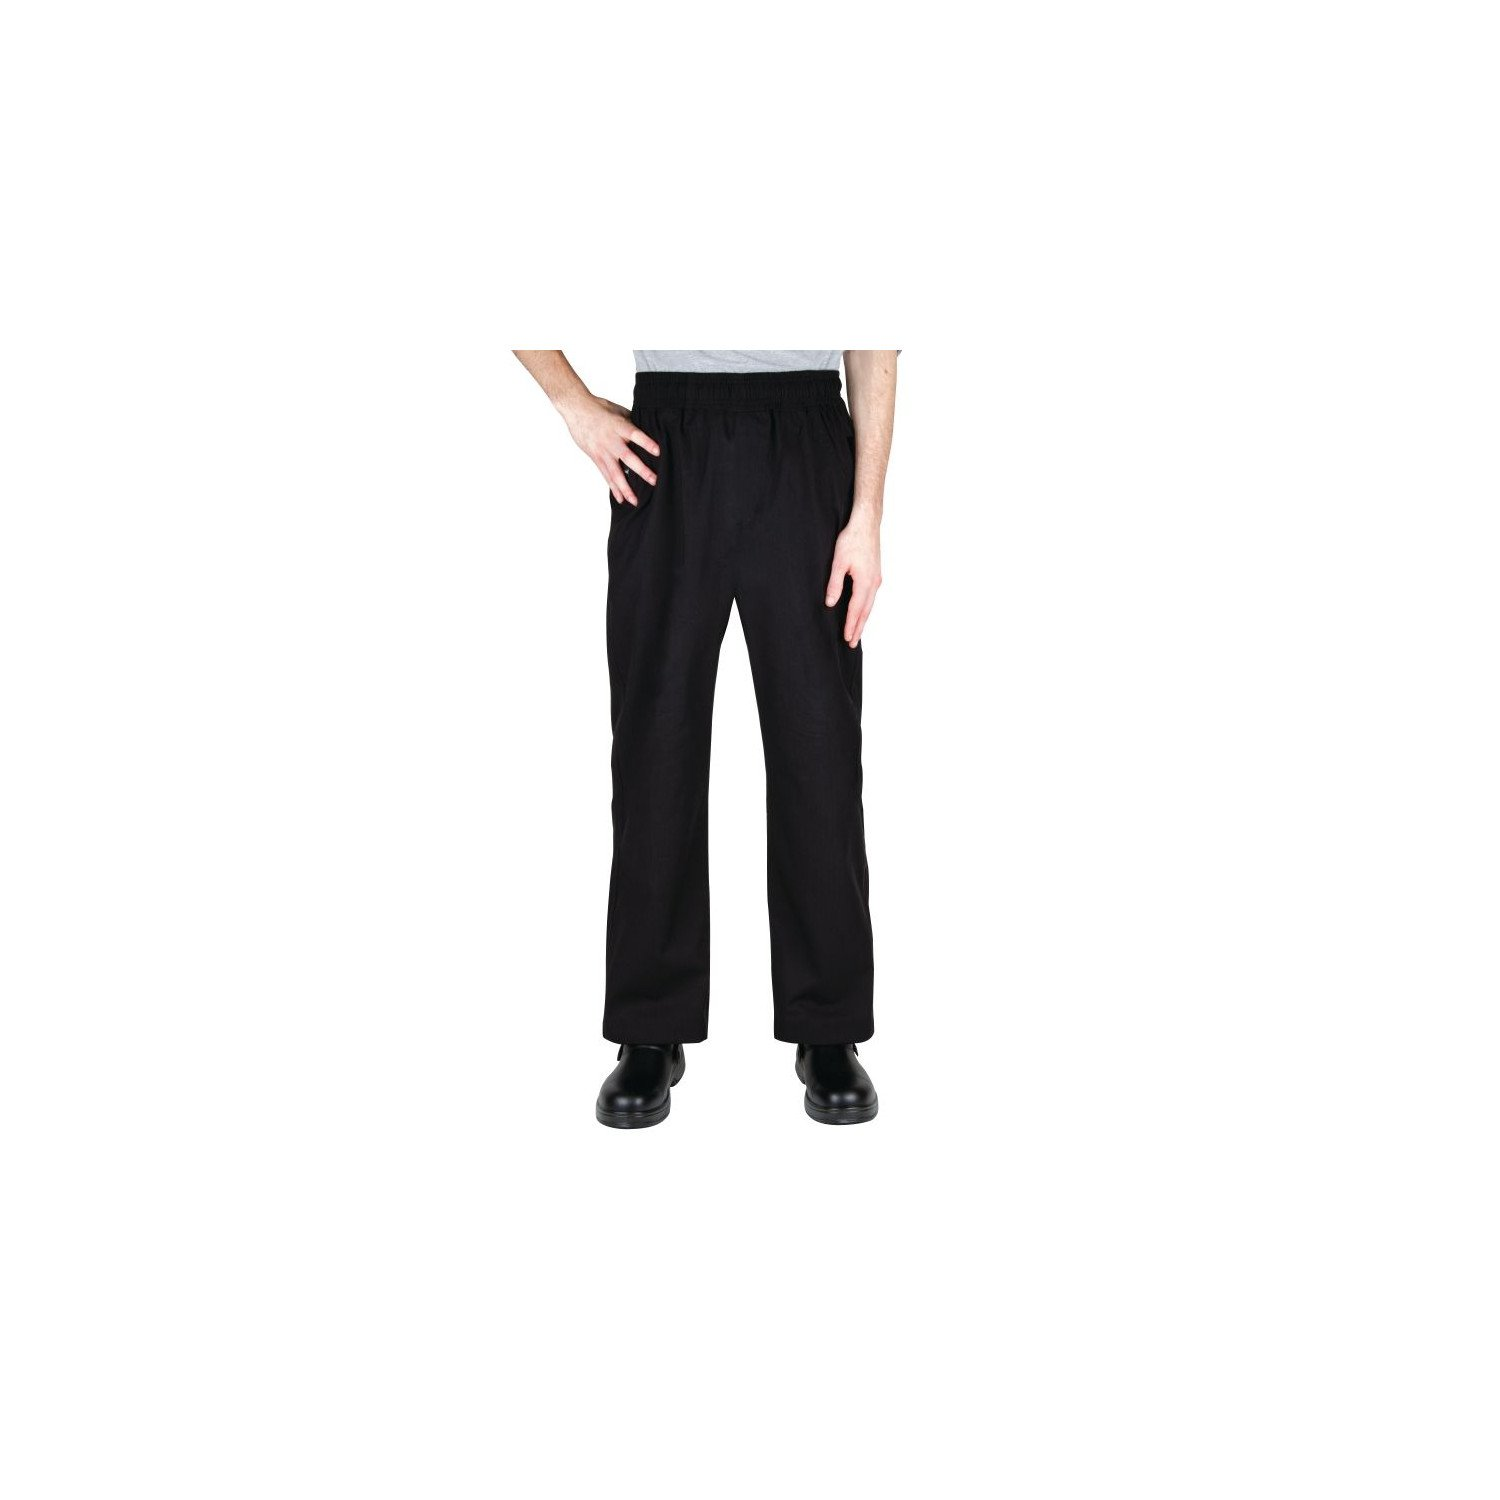 "Pantalon ""Baggy"" noir M CHEF WORKS Nisbets Vêtements"